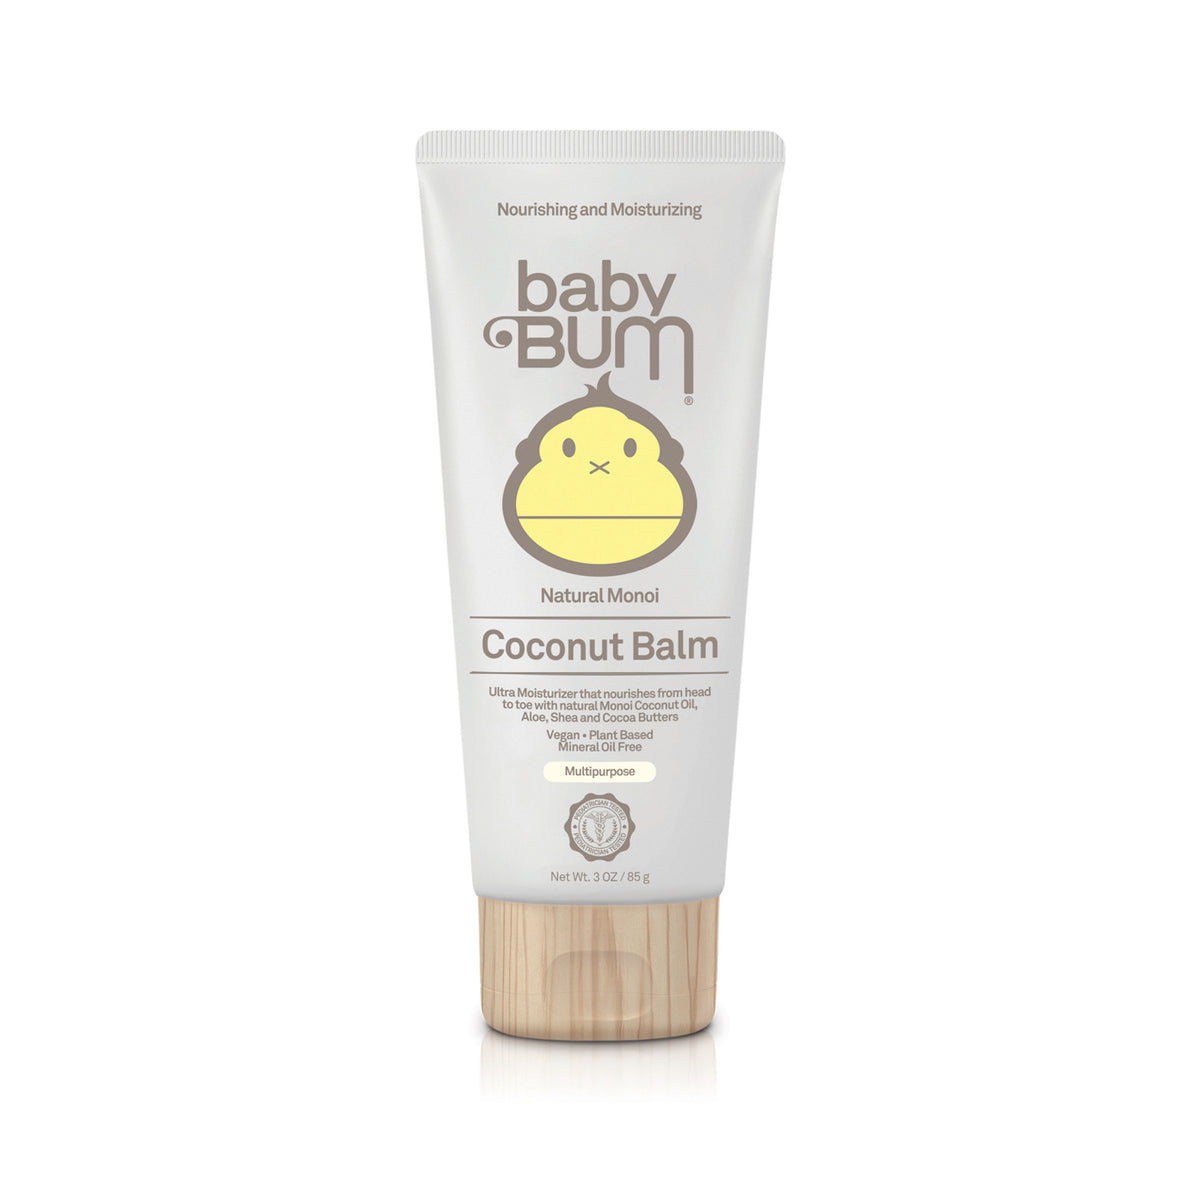 Baby Bum Natural Monoi Coconut Balm 85g